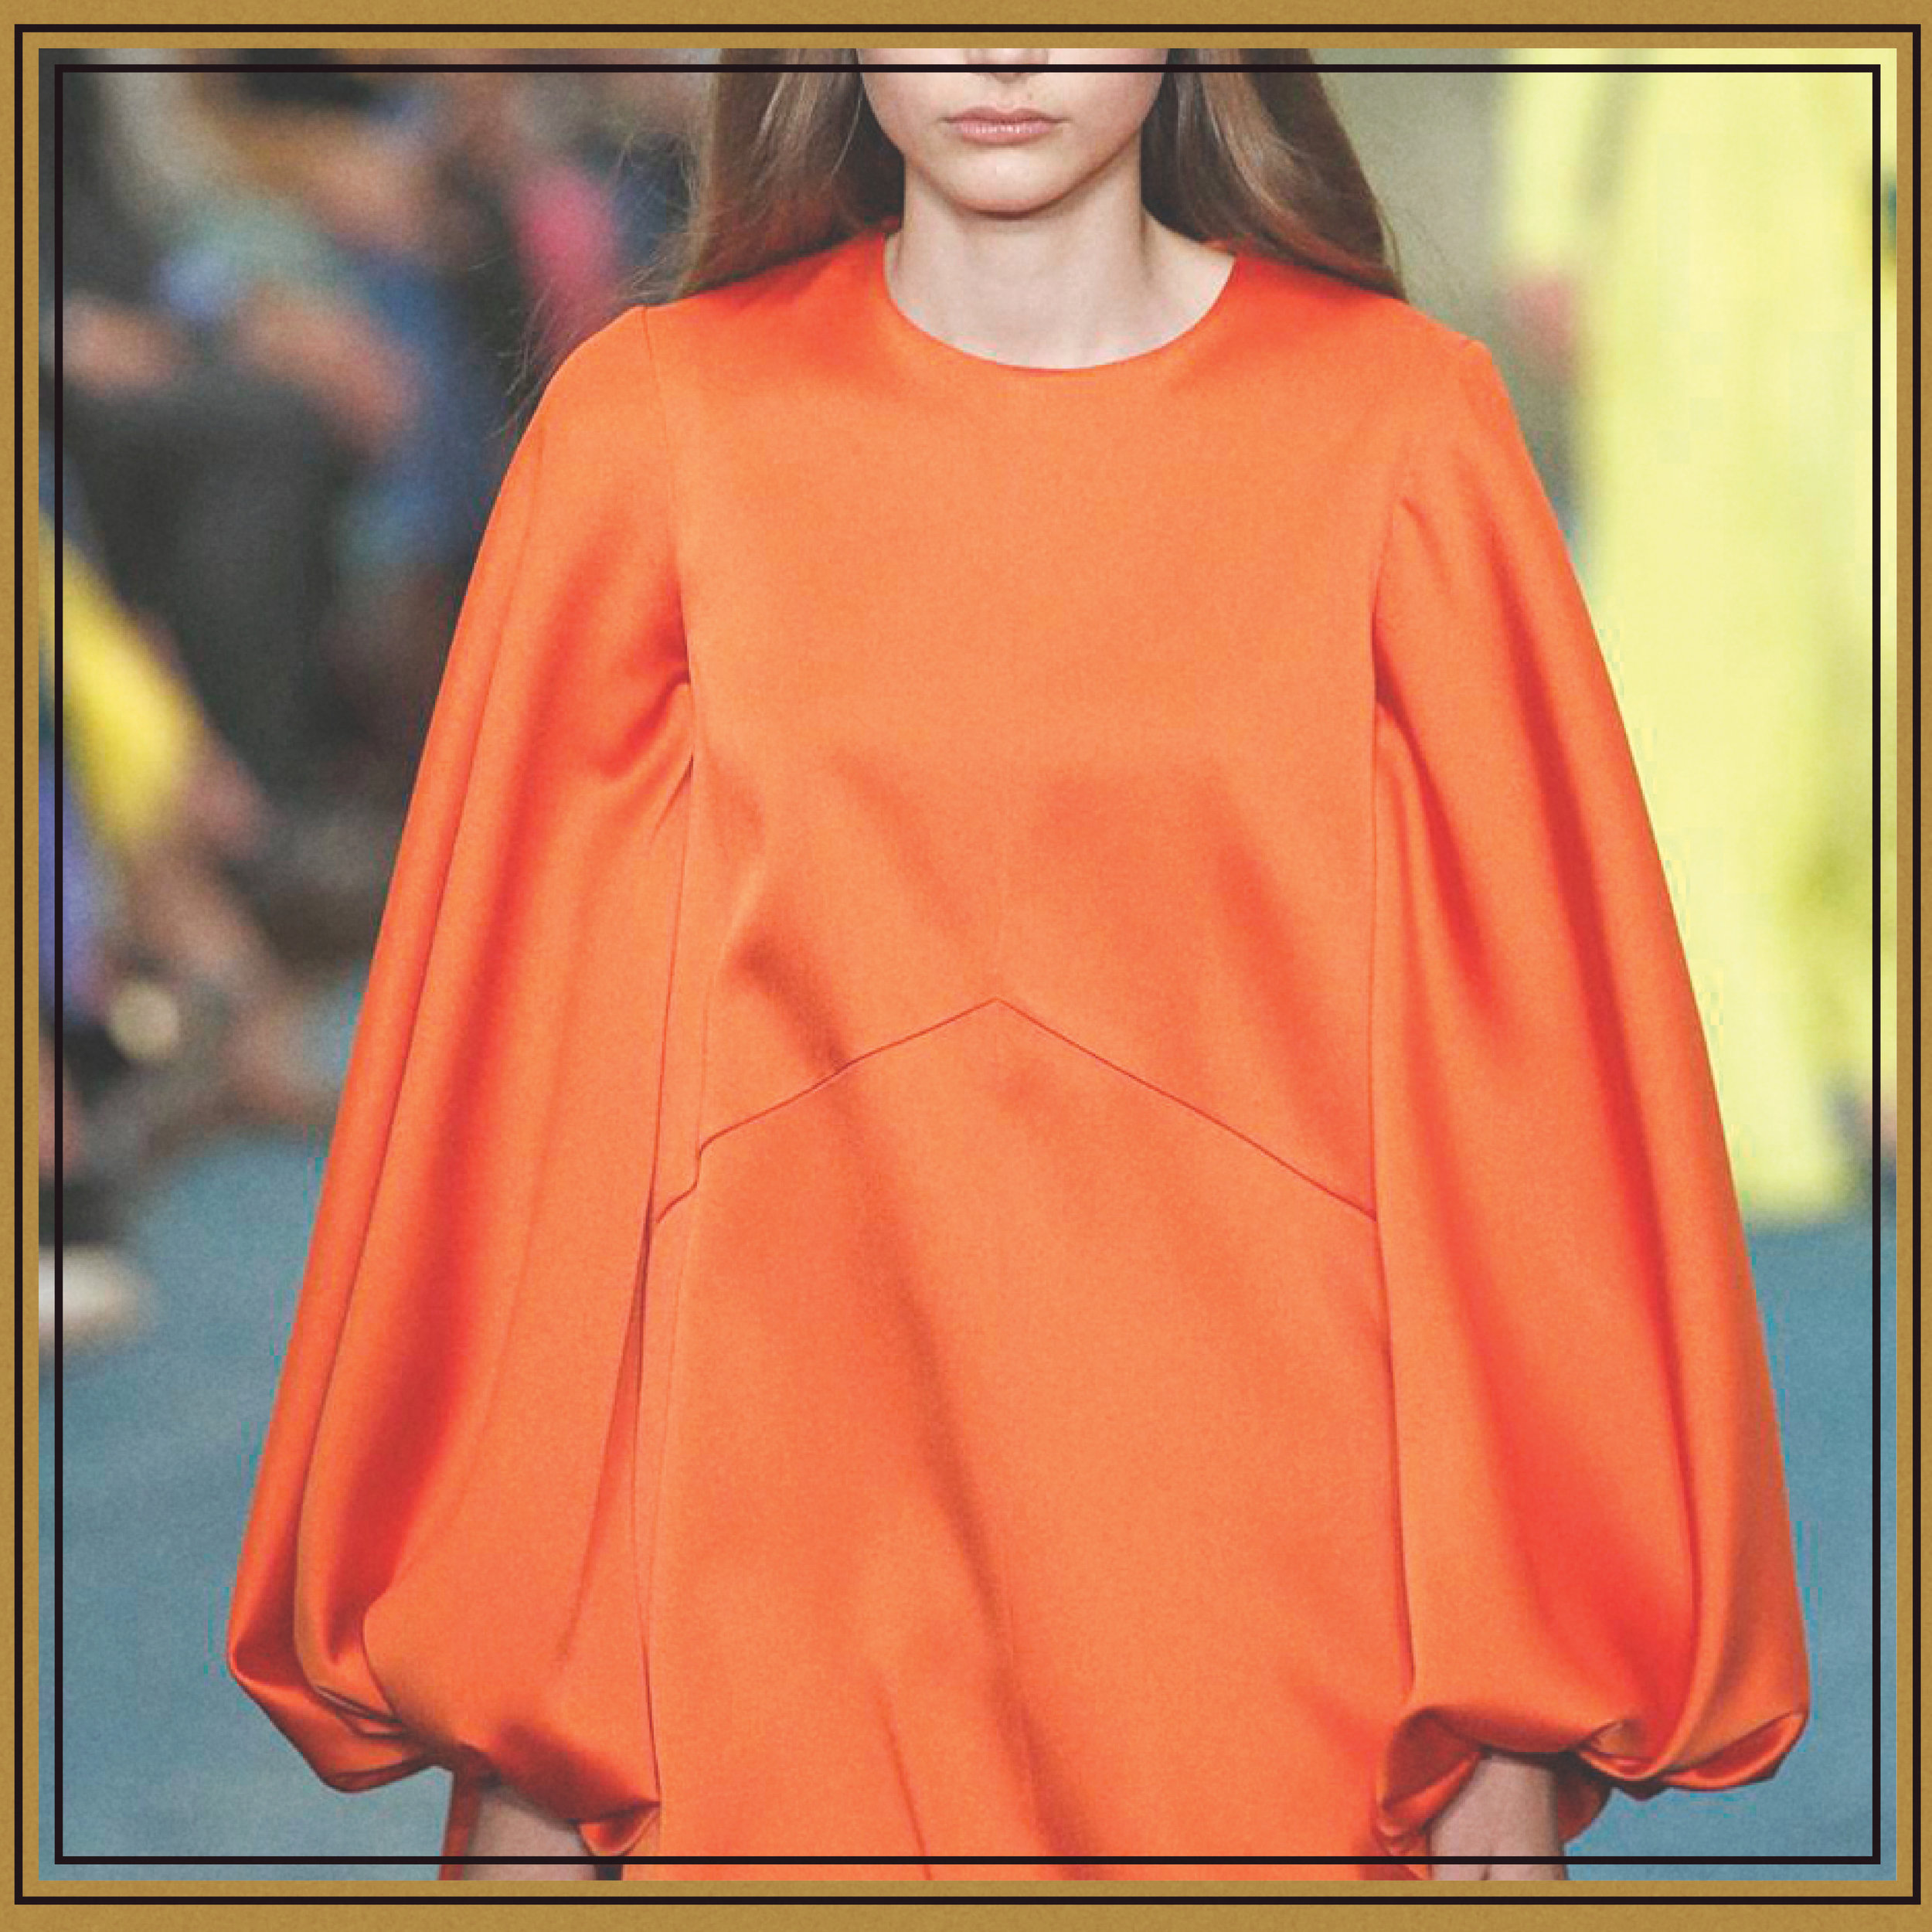 Tiger Orange - Bright-and-bold hues for fall and winter? You bet. Vibrant orange was seen in abundance on the fall runways, paired with equally bright pink (see below), as well as subdued neutrals. It's a surprisingly flattering color on every skin tone. For a statement look, opt for tailored separates worn with a neutral tee.